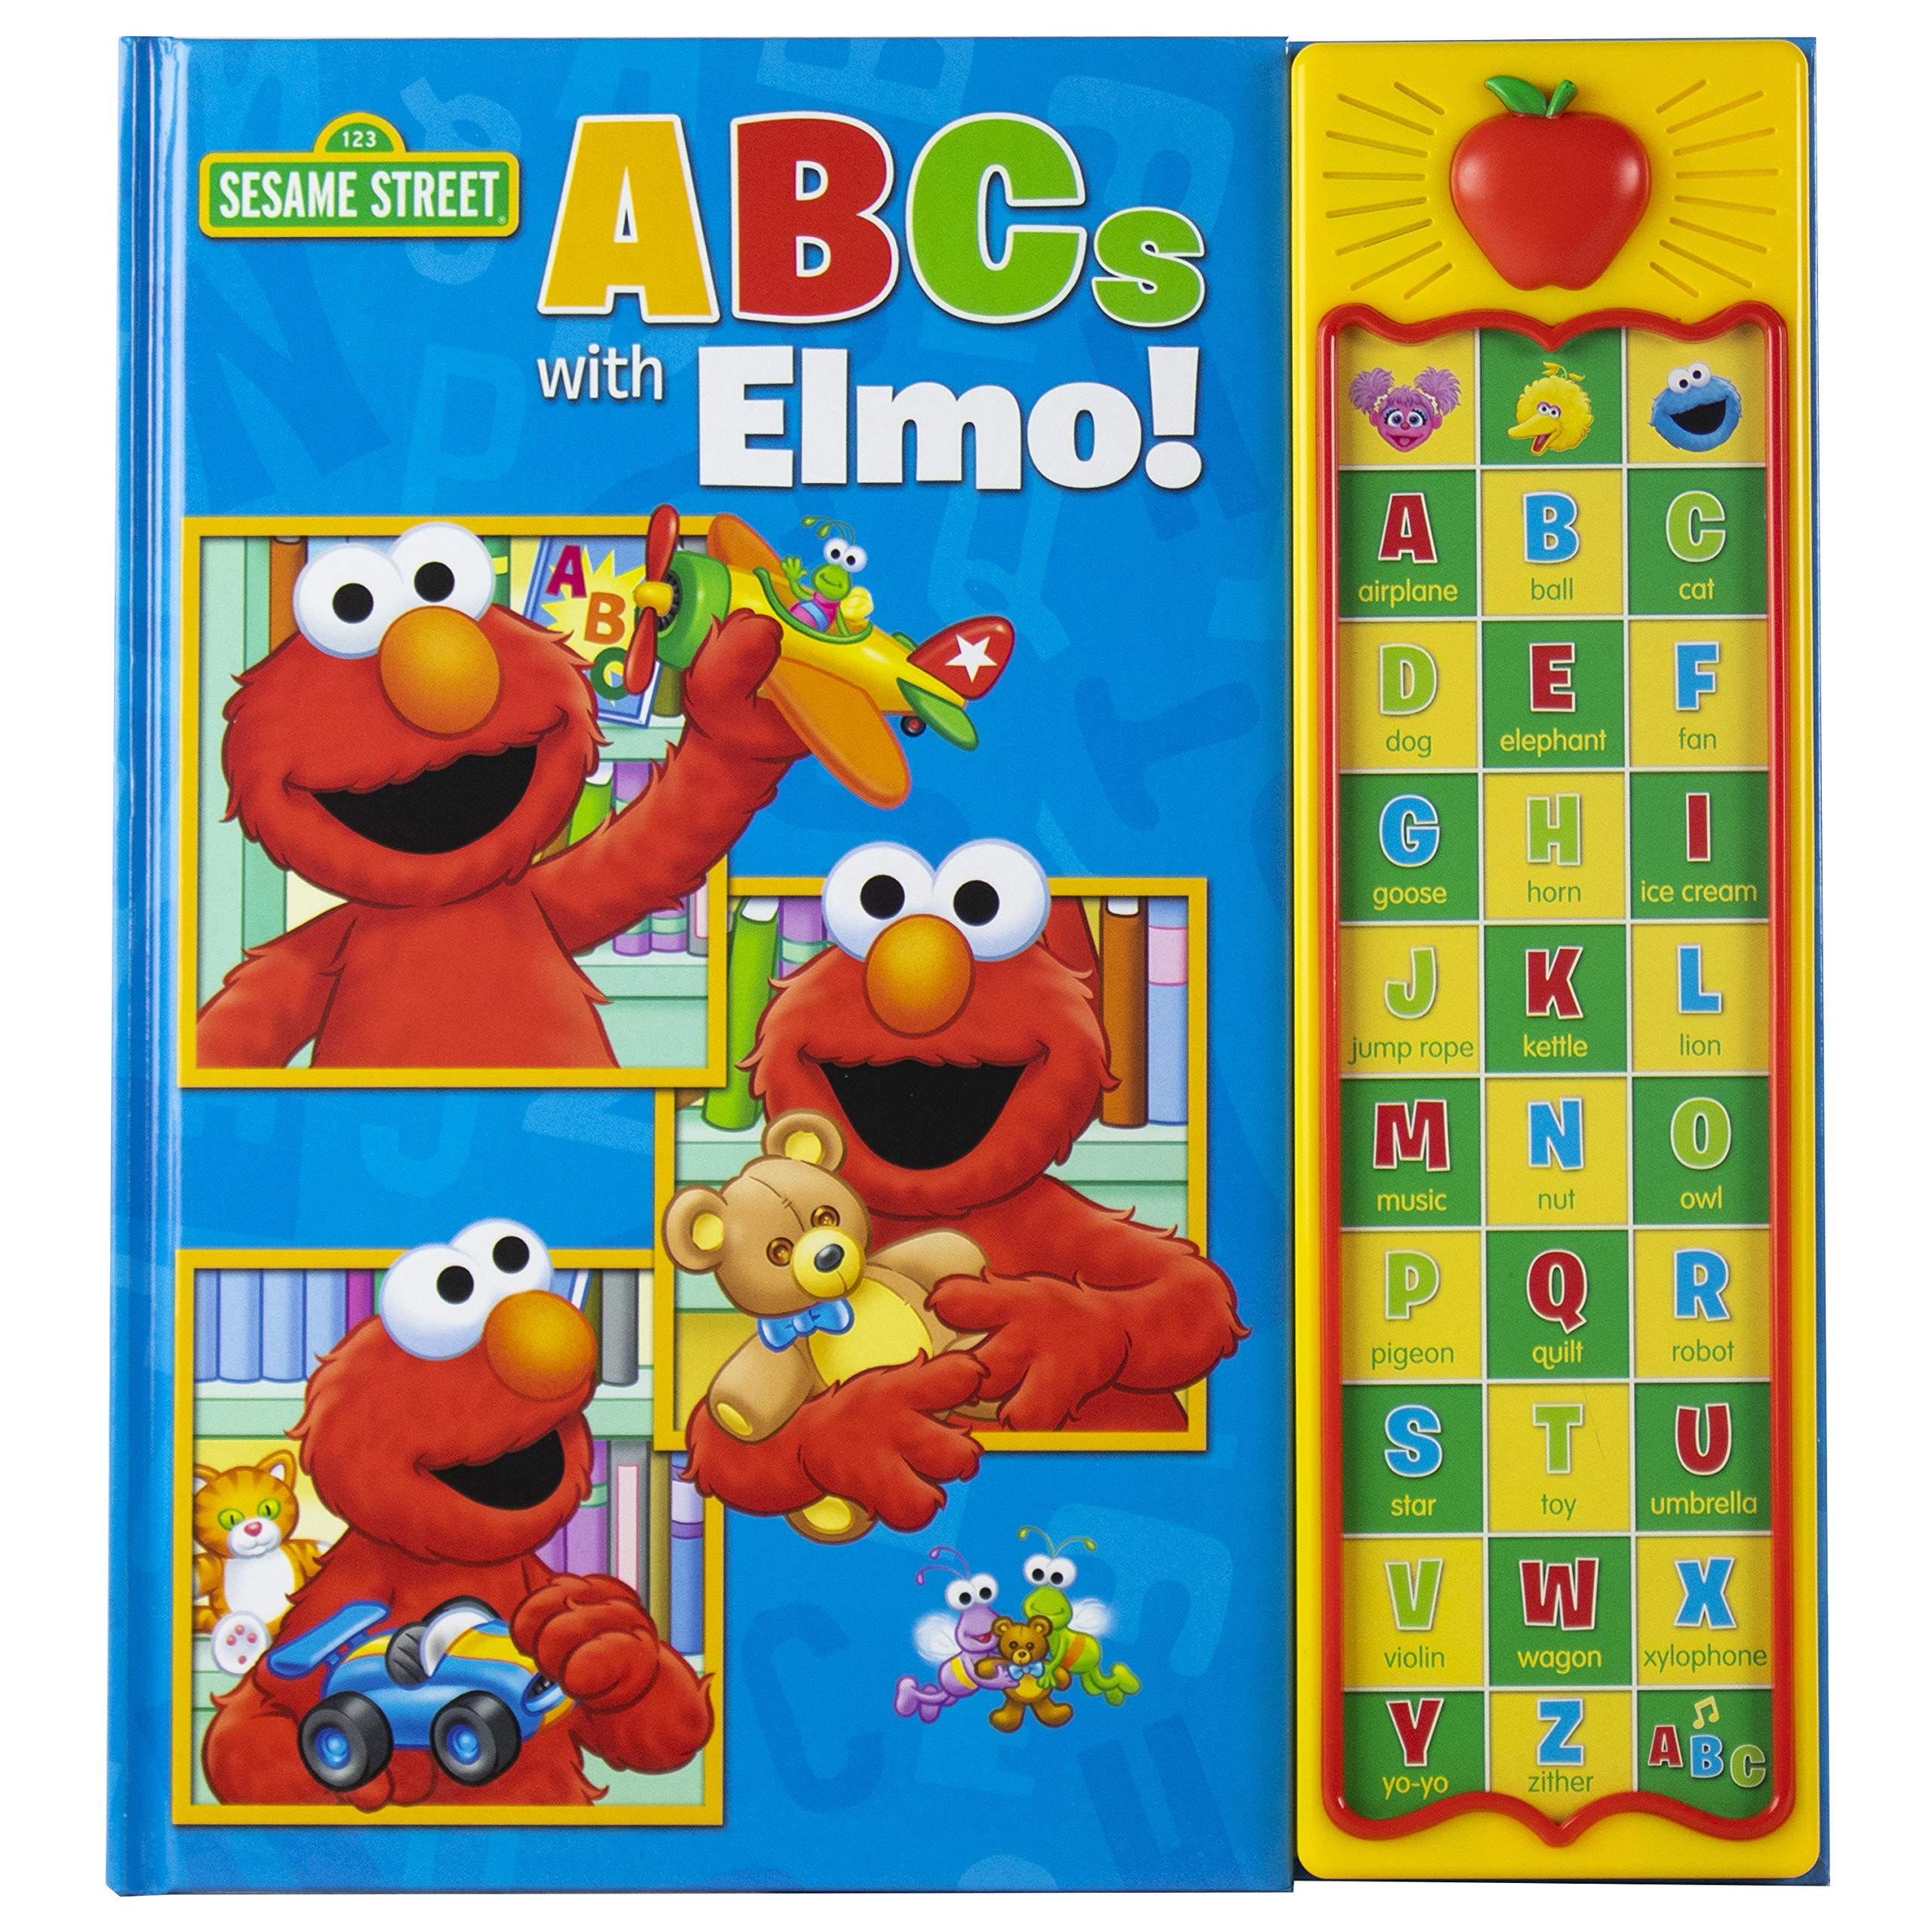 Sesame Street ABCs Button Sound product image